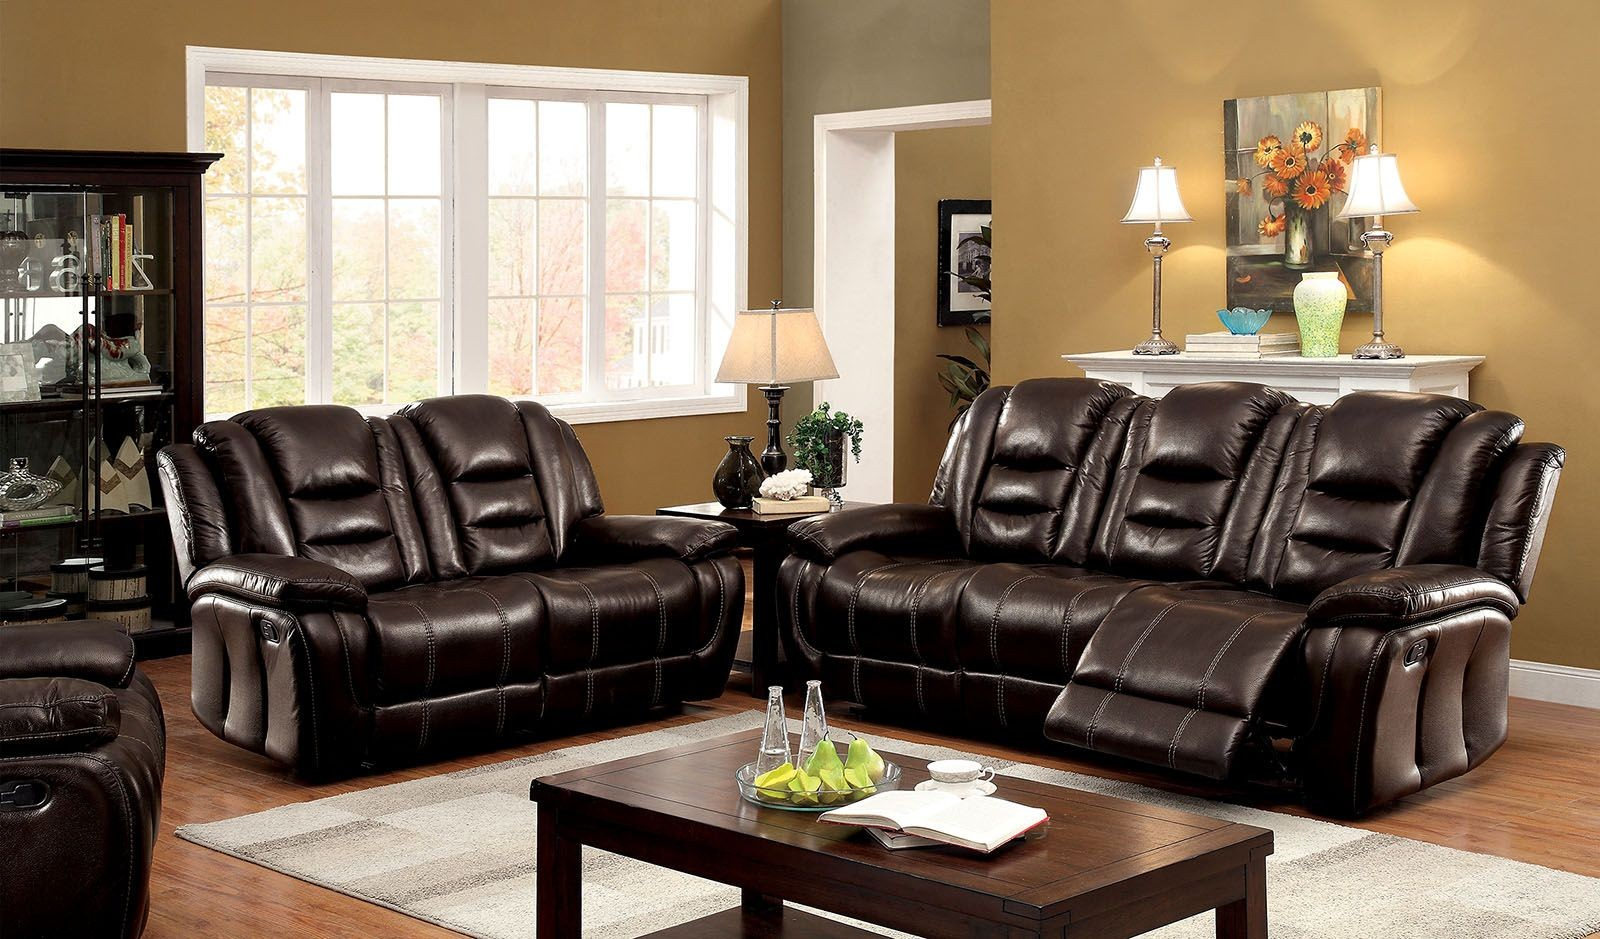 Ronan dark brown living room set cm6331 sf furniture of for Dark brown living room set